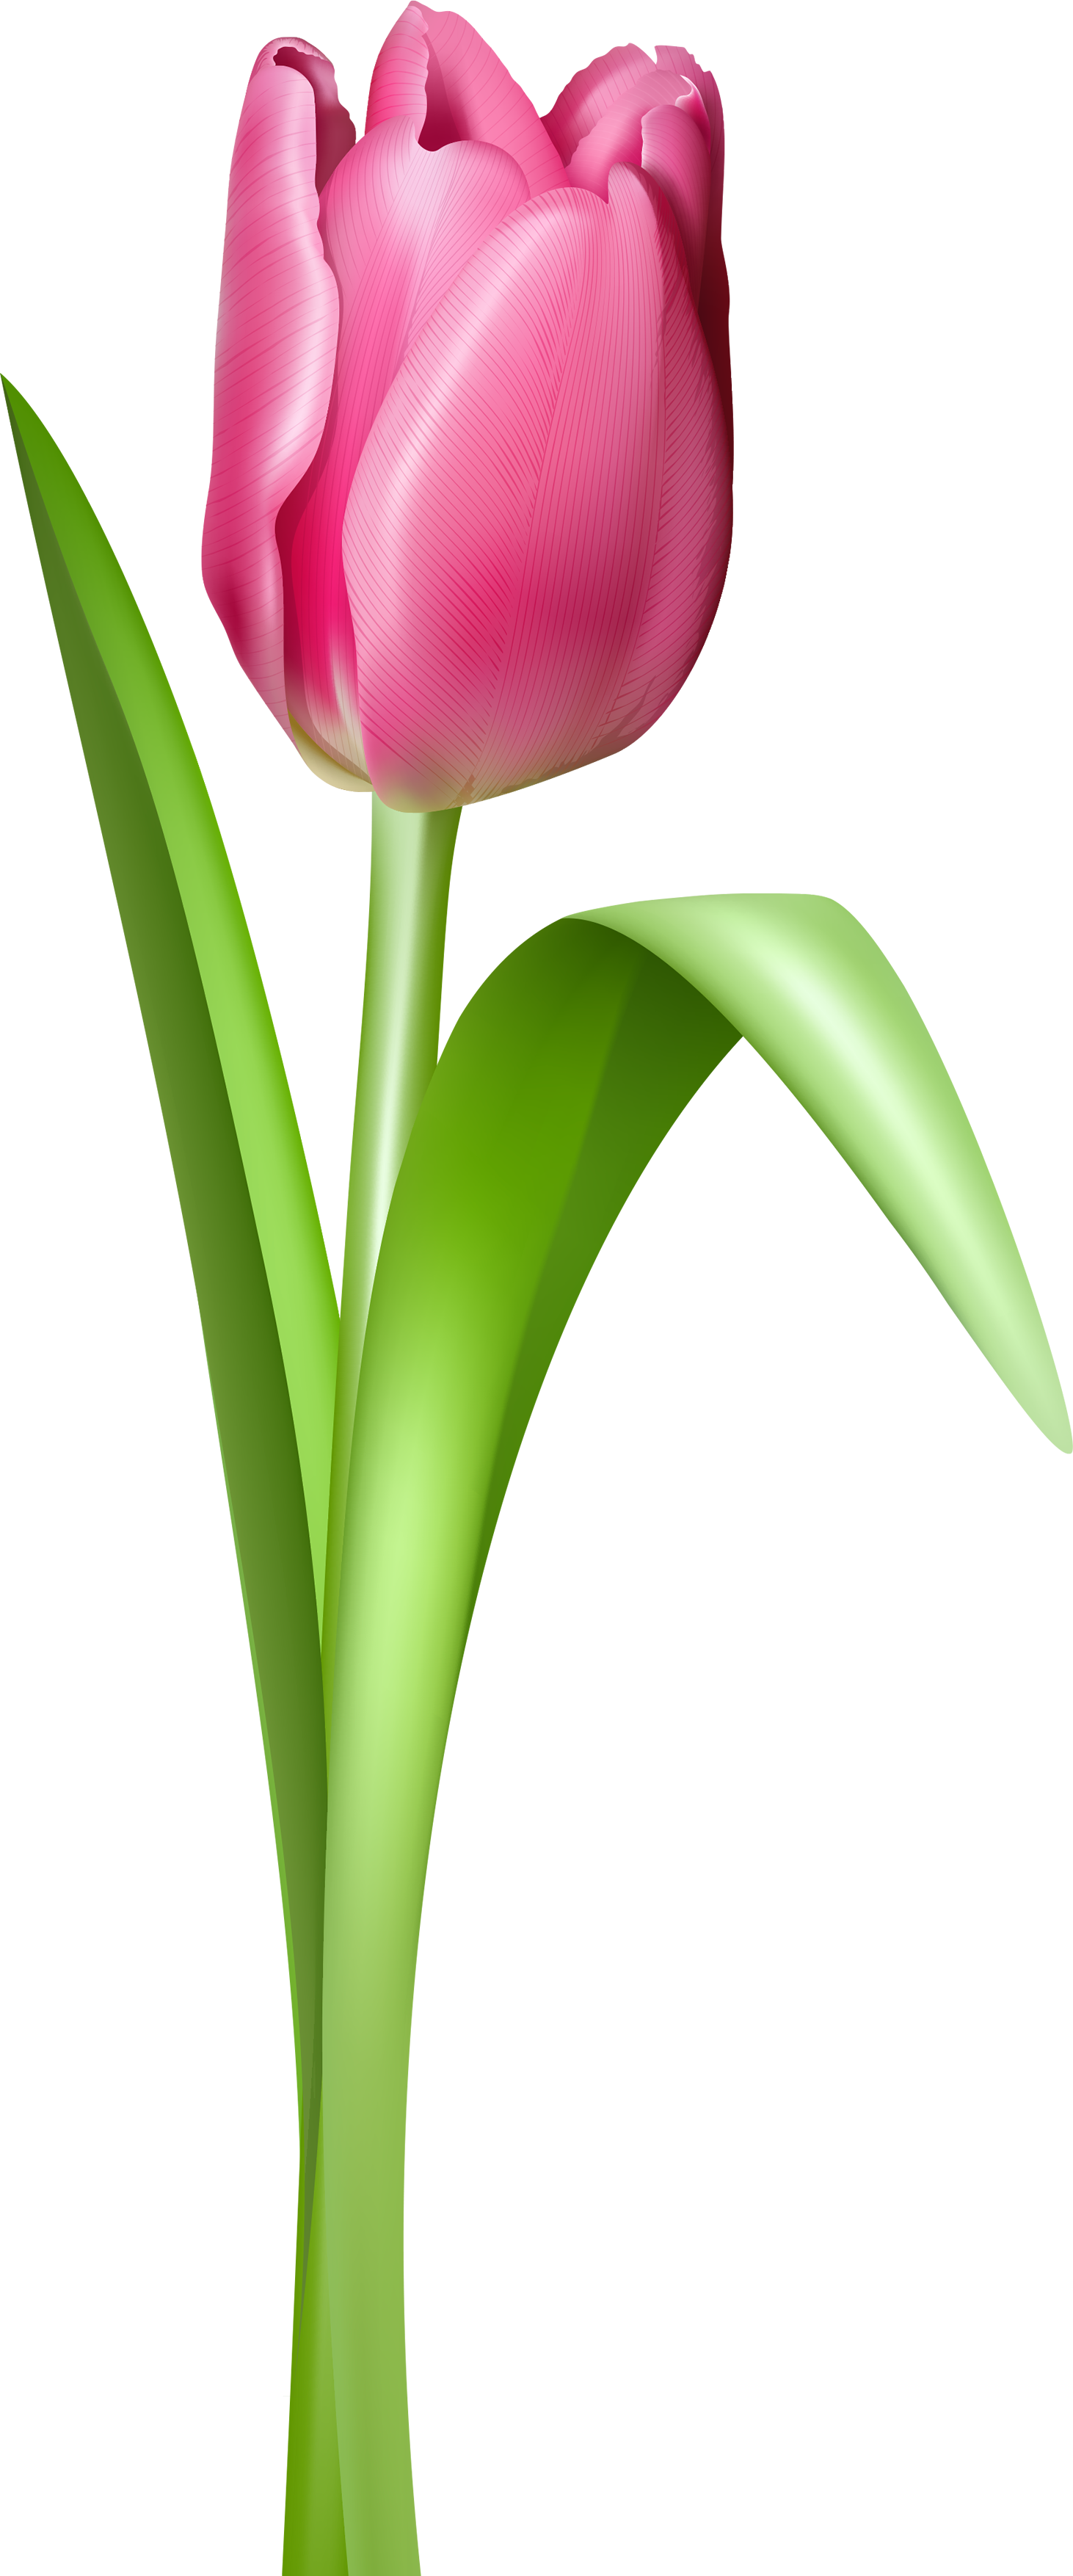 Tulip flower clipart black and white svg free stock Tulip PNG image | photos for painting | Pinterest | Flowers svg free stock